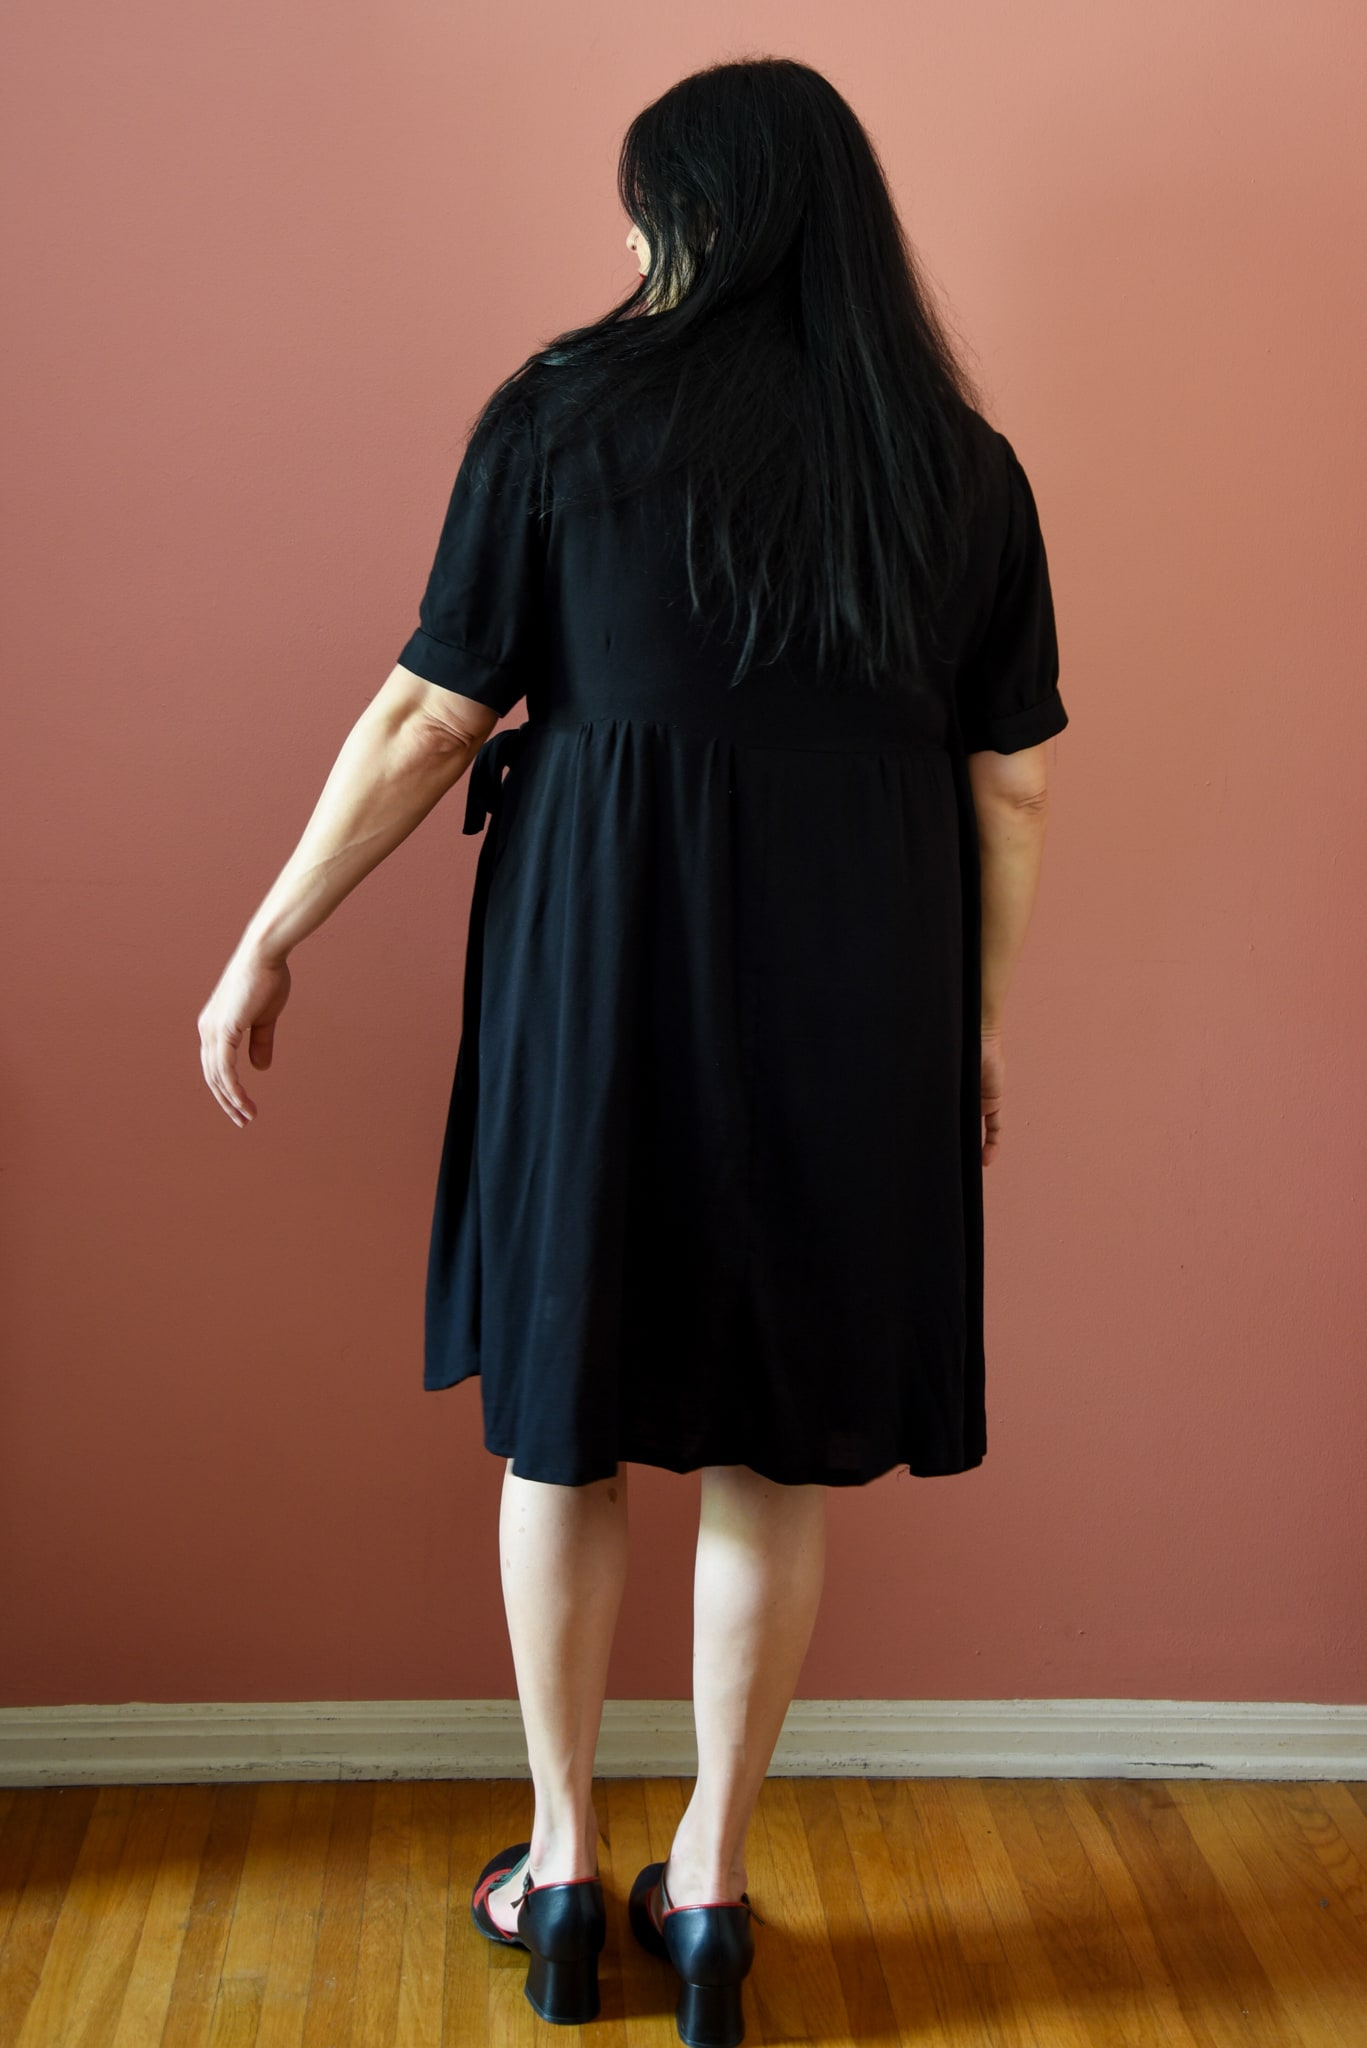 Image of the back of a woman wearing a black wrap dress standing in front of a pink wall.